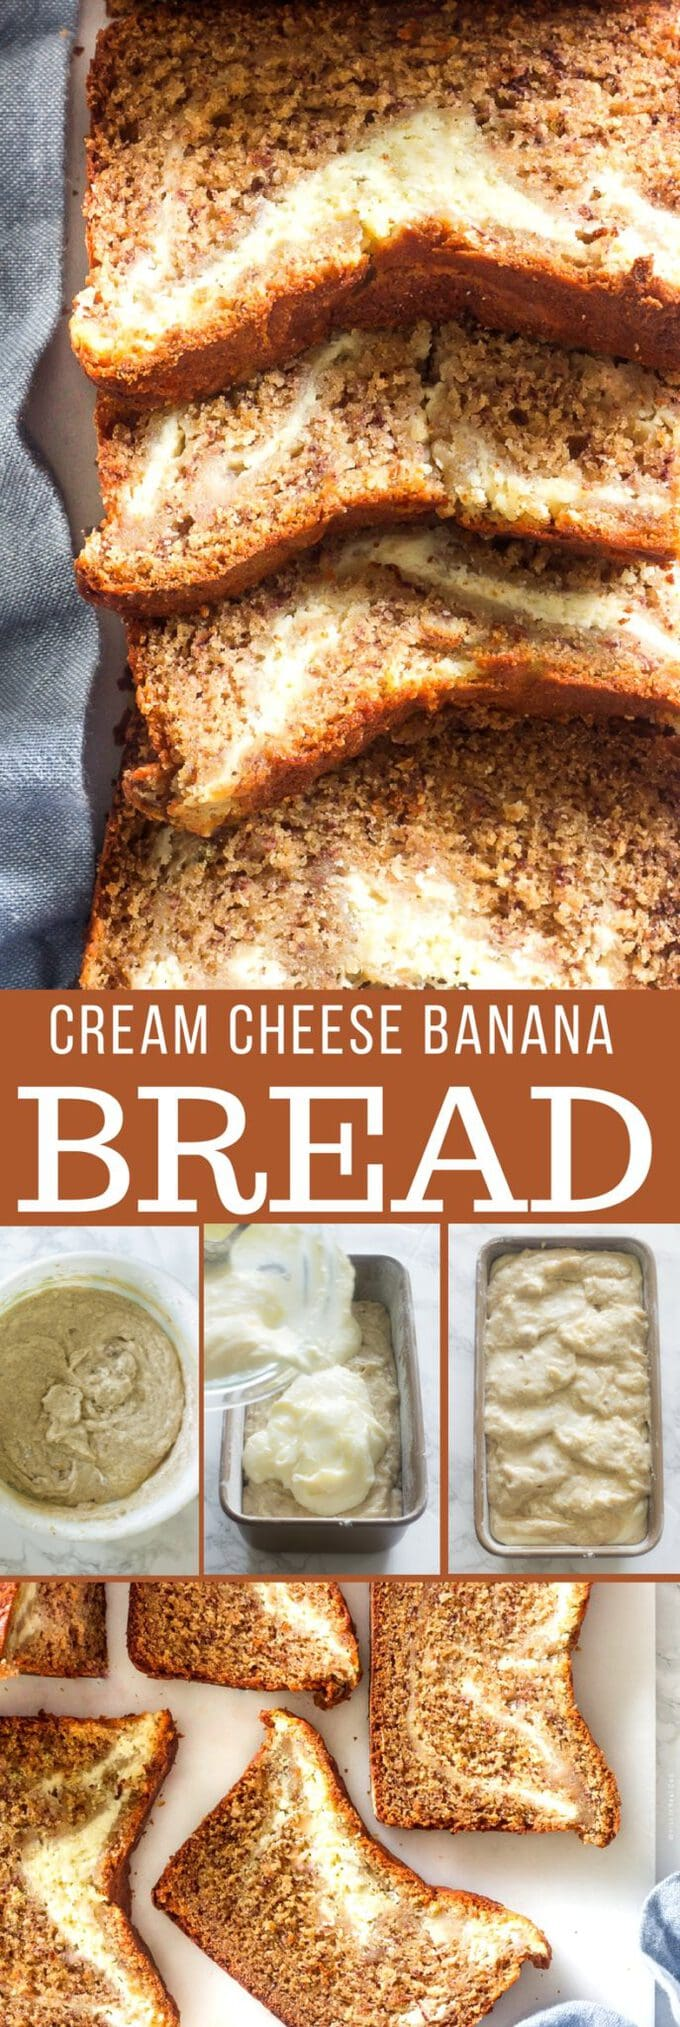 This moist cream cheese banana bread is easy to make. It reminds me of the comforting treats I grew up eating. This recipe calls for simple pantry ingredients that you probably already have on hand.